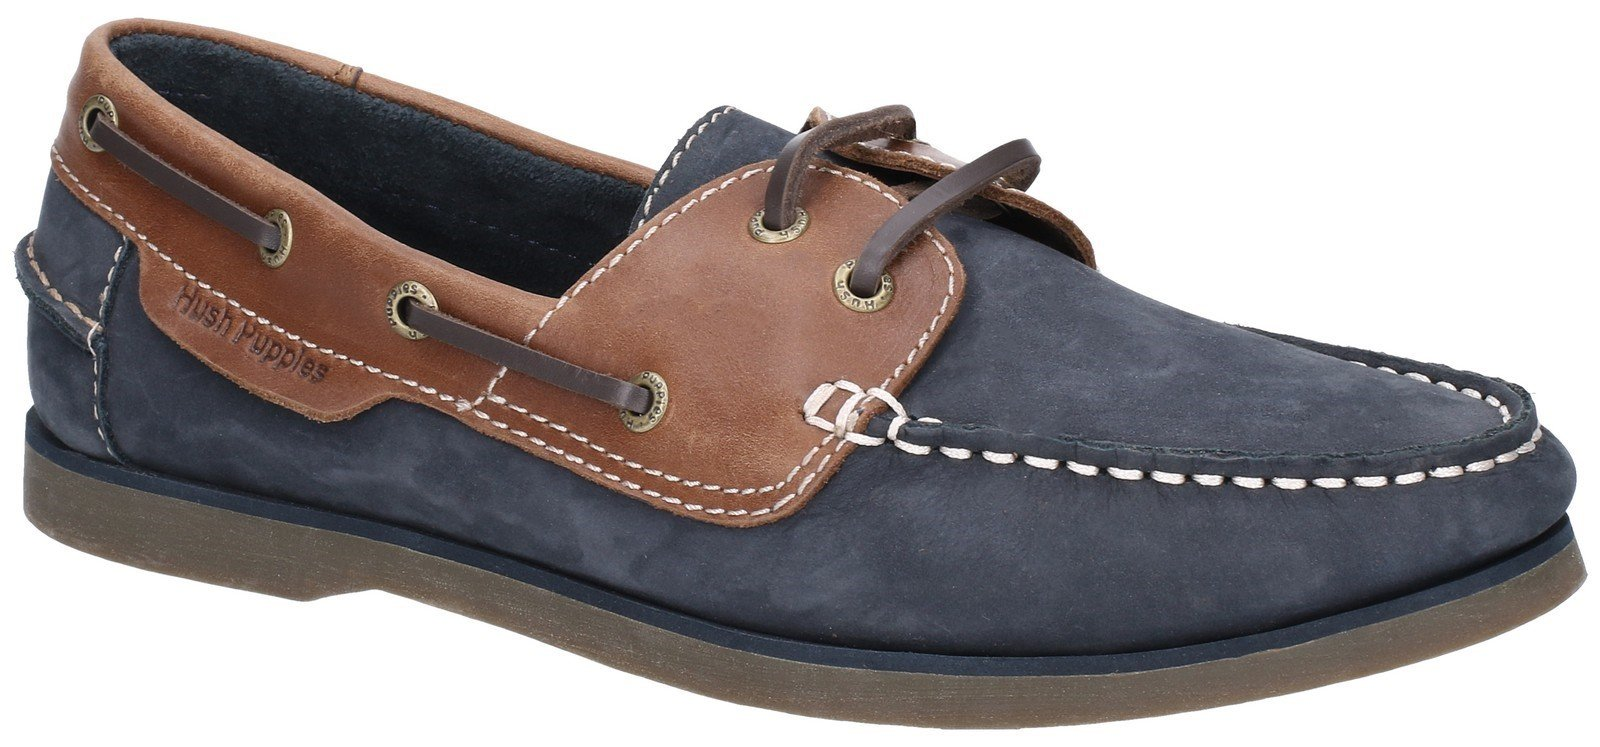 Hush Puppies Men's Henry Classic Lace Up Loafer Various Colours 28365 - Blue/Tan 6